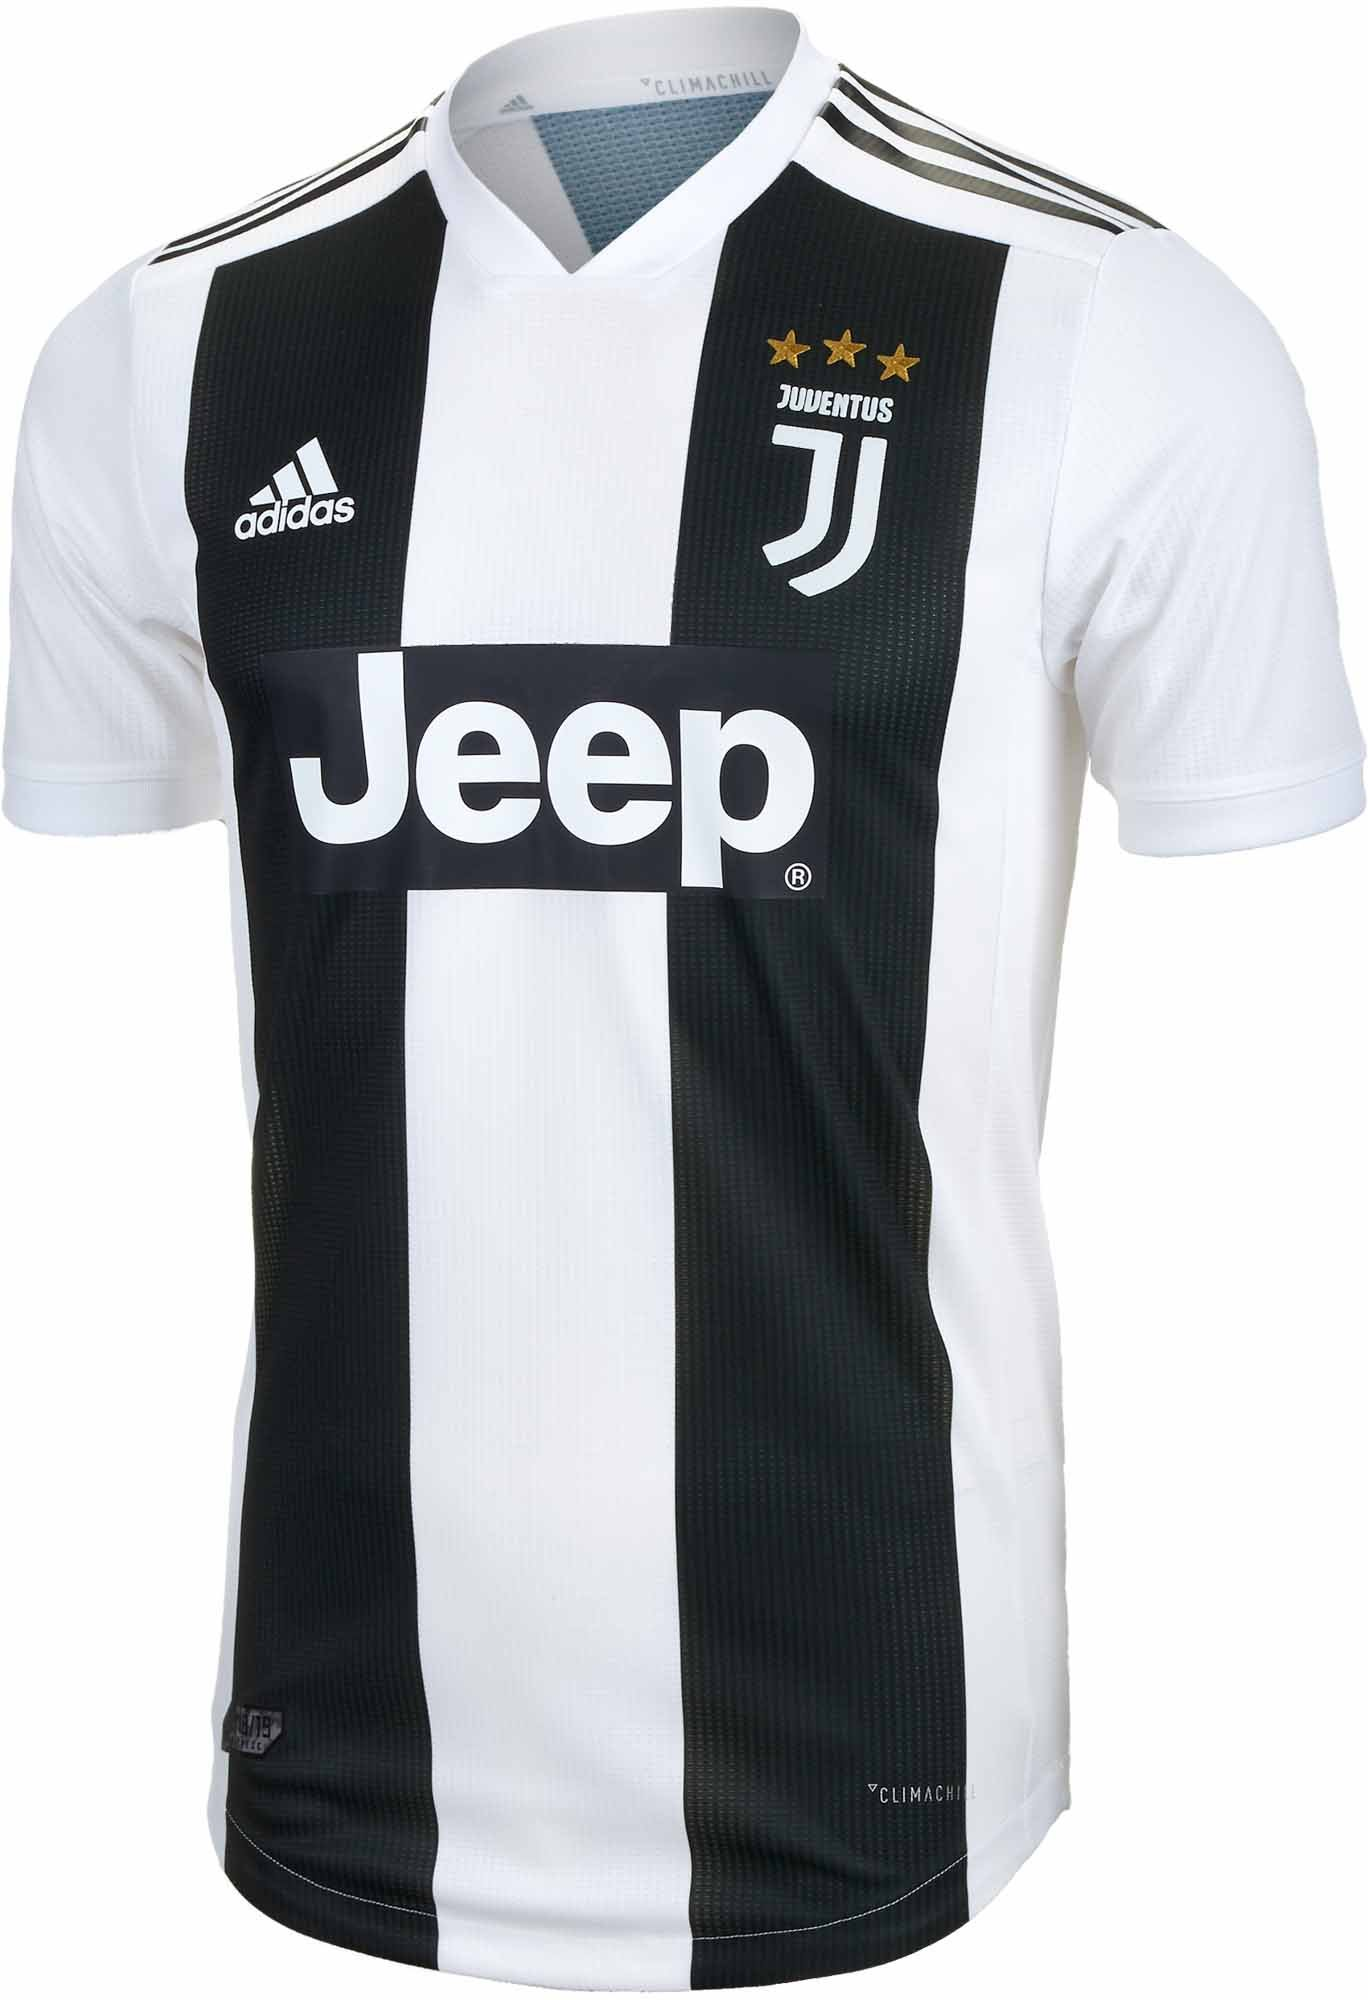 check out 2ca81 cfd2f 2018/19 adidas Juventus Home Authentic Jersey